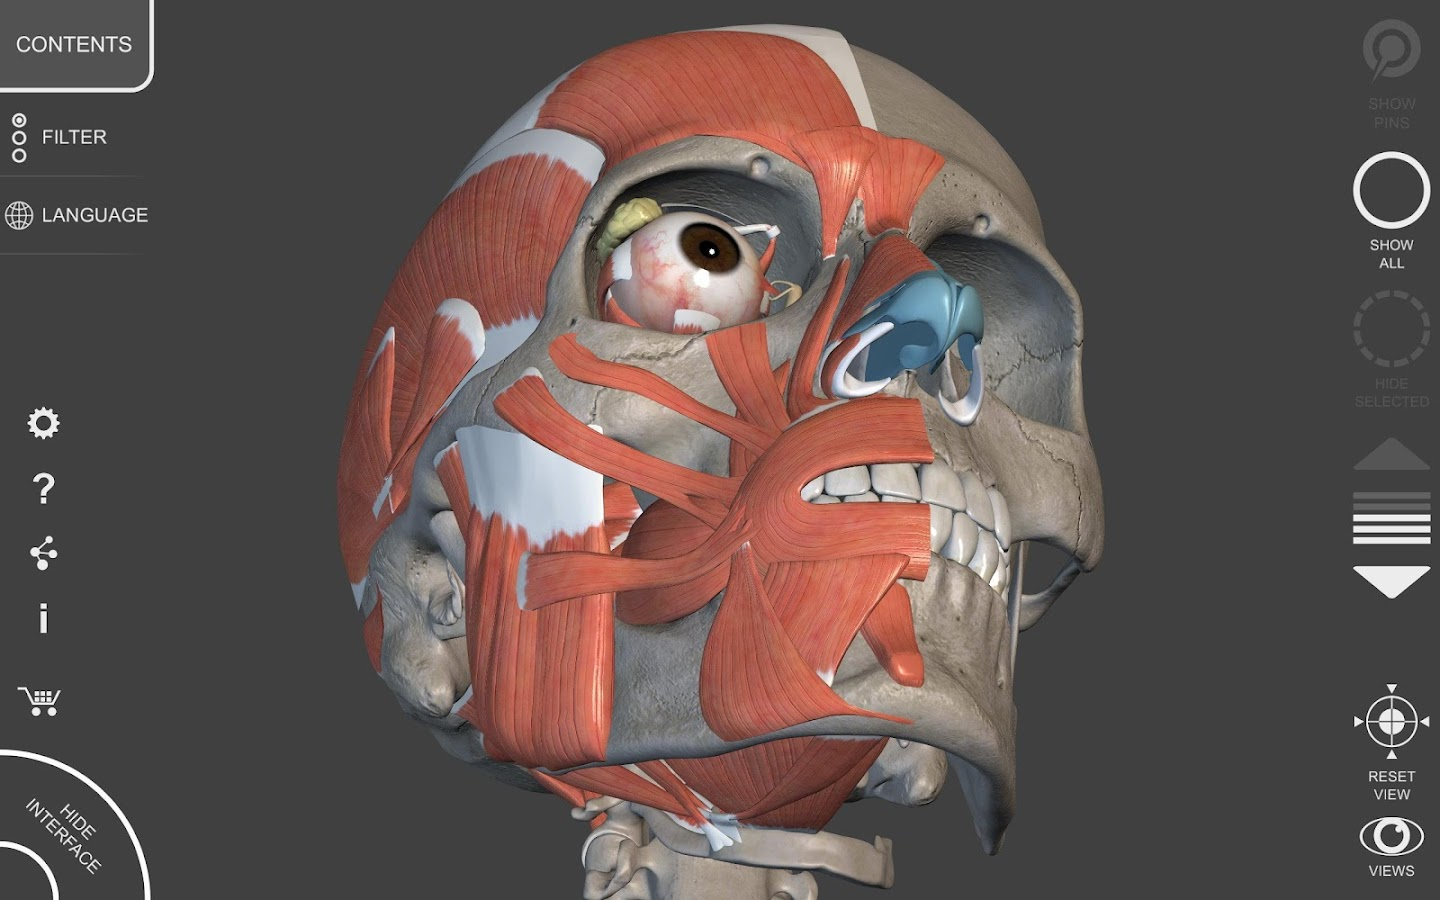 Muscular System - 3D Anatomy 1.3.2 APK Download - Android Medical Apps